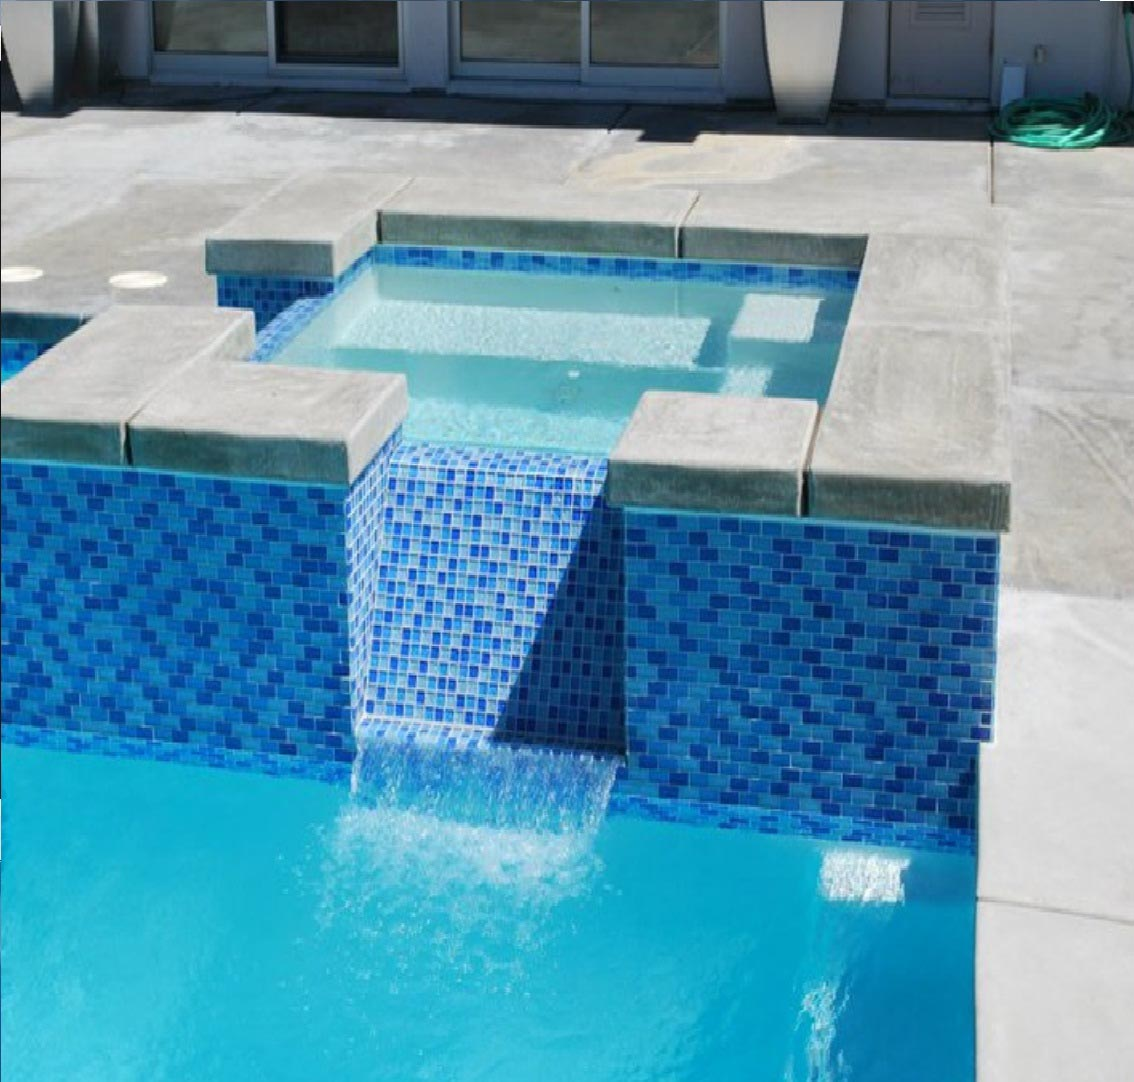 Swimming pool tile replacement backyard design ideas - Swimming pool tiles designs ...